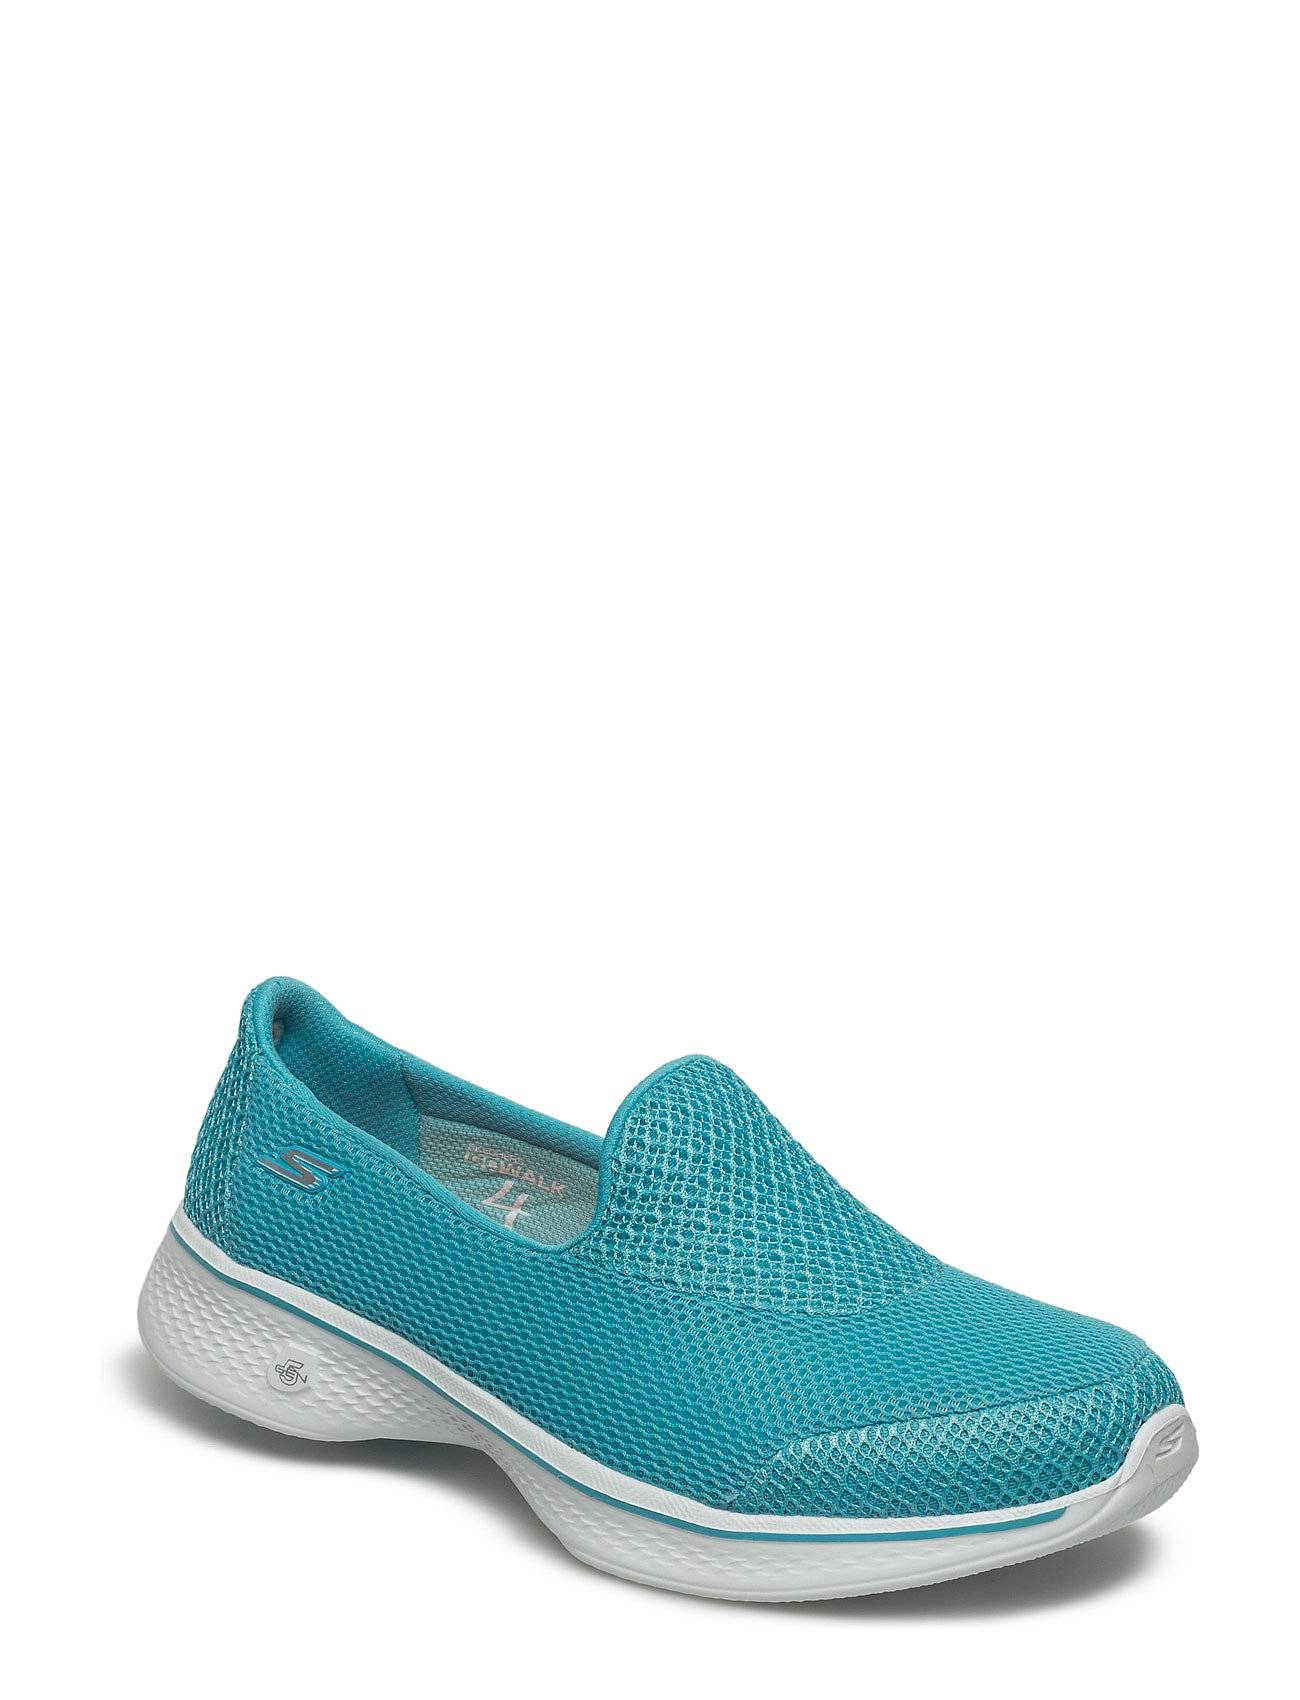 Skechers Womens Go Walk 4- Propel